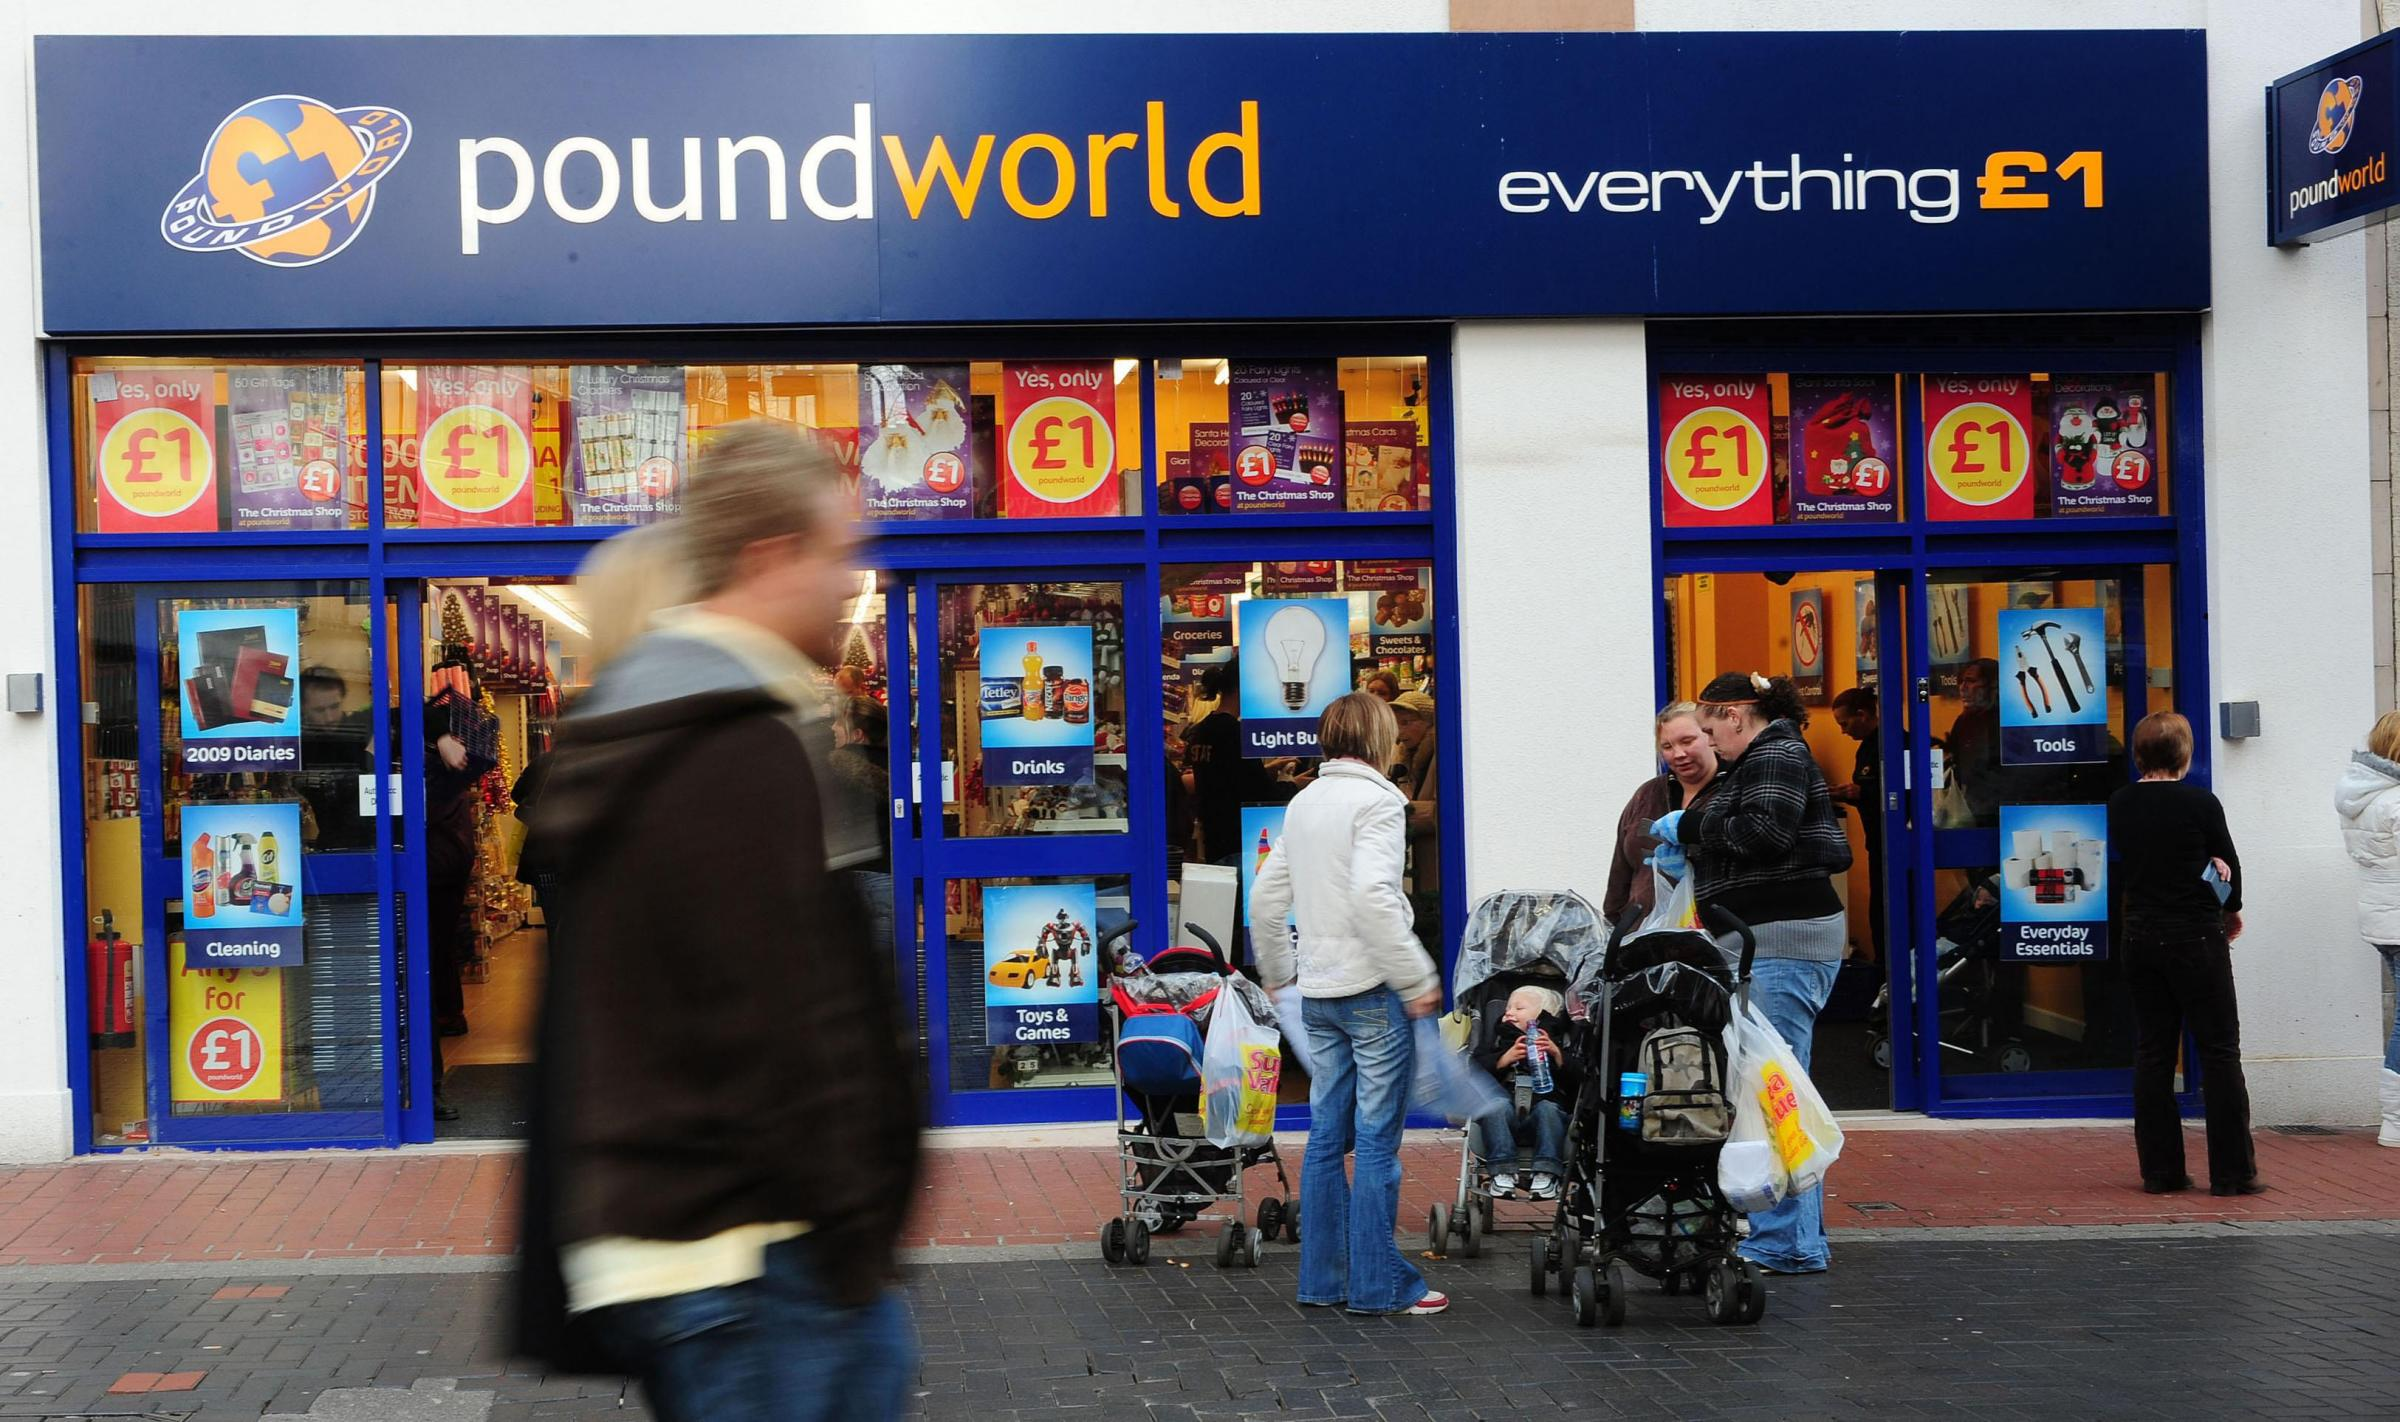 File photo 24/11/2008 of a Poundworld store. The budget retailer is facing a race against time to avoid collapse, with administrators on standby after a buyer walked away from talks to rescue the business. PRESS ASSOCIATION Photo. Issue date: Wednesday Ju